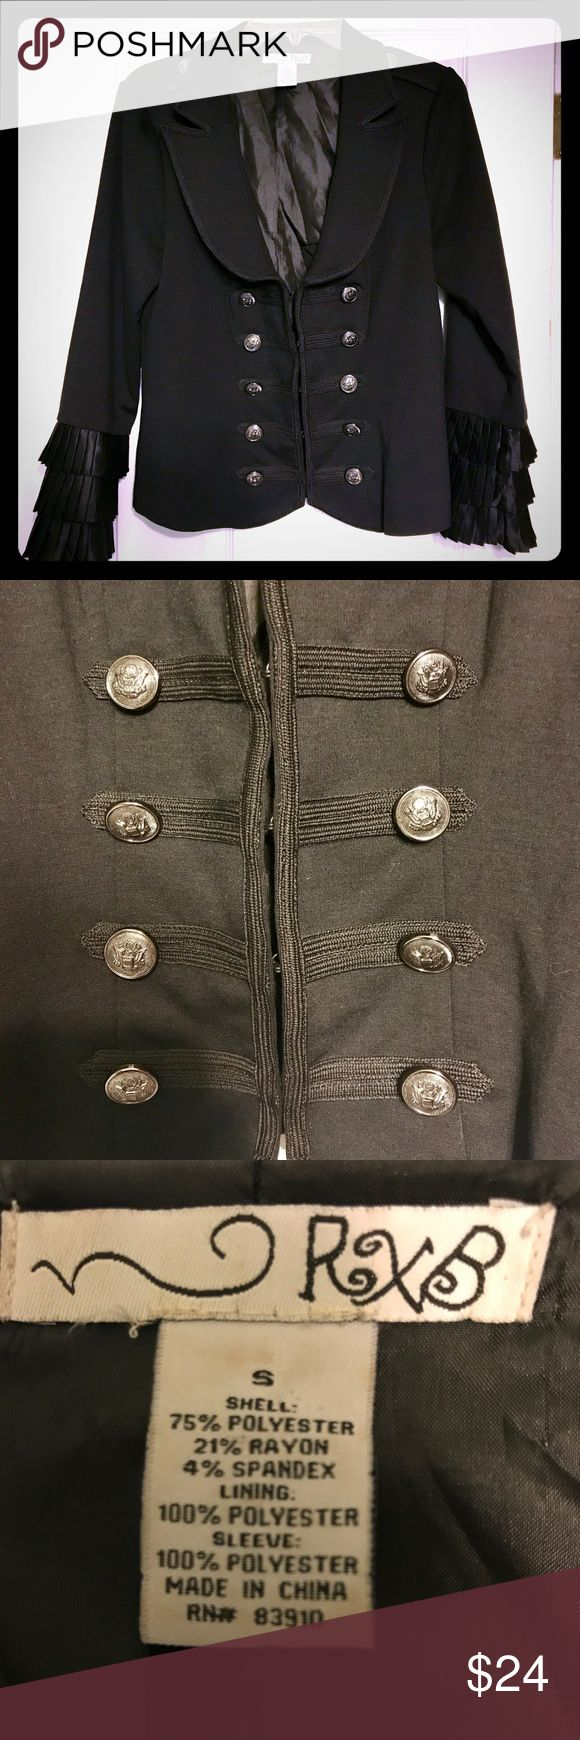 RXB black military style jacket. Size small Very pretty RXB black jacket.  Military style. Sleeve ruffles. Fully lined. Silver button accents on front and shoulders. Hook and eye front closures. In excellent condition! Thanks for looking!  RXB Jackets & Coats Utility Jackets